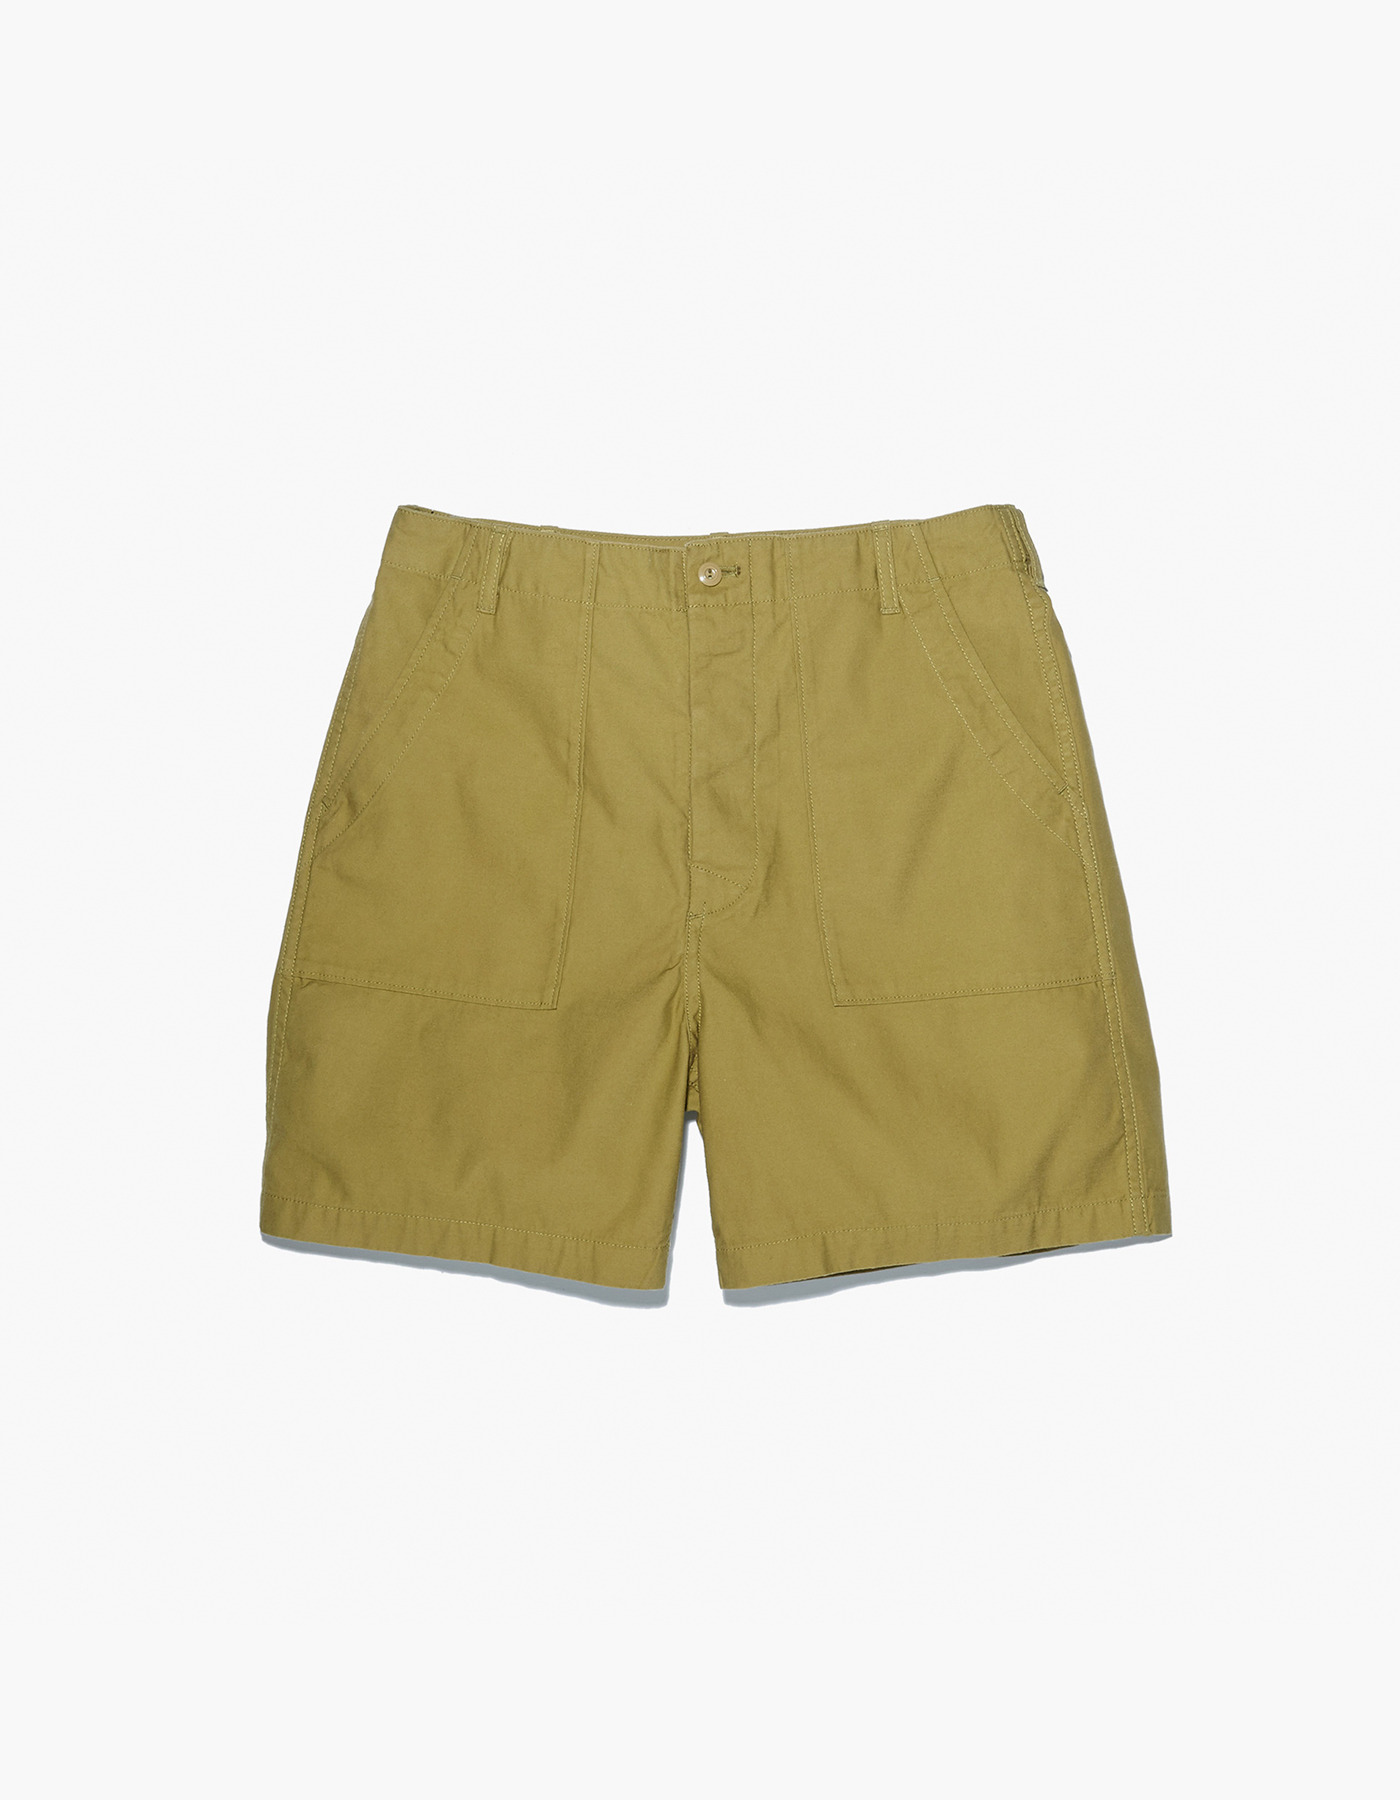 FATIGUE SHORTS / BEIGE (M)